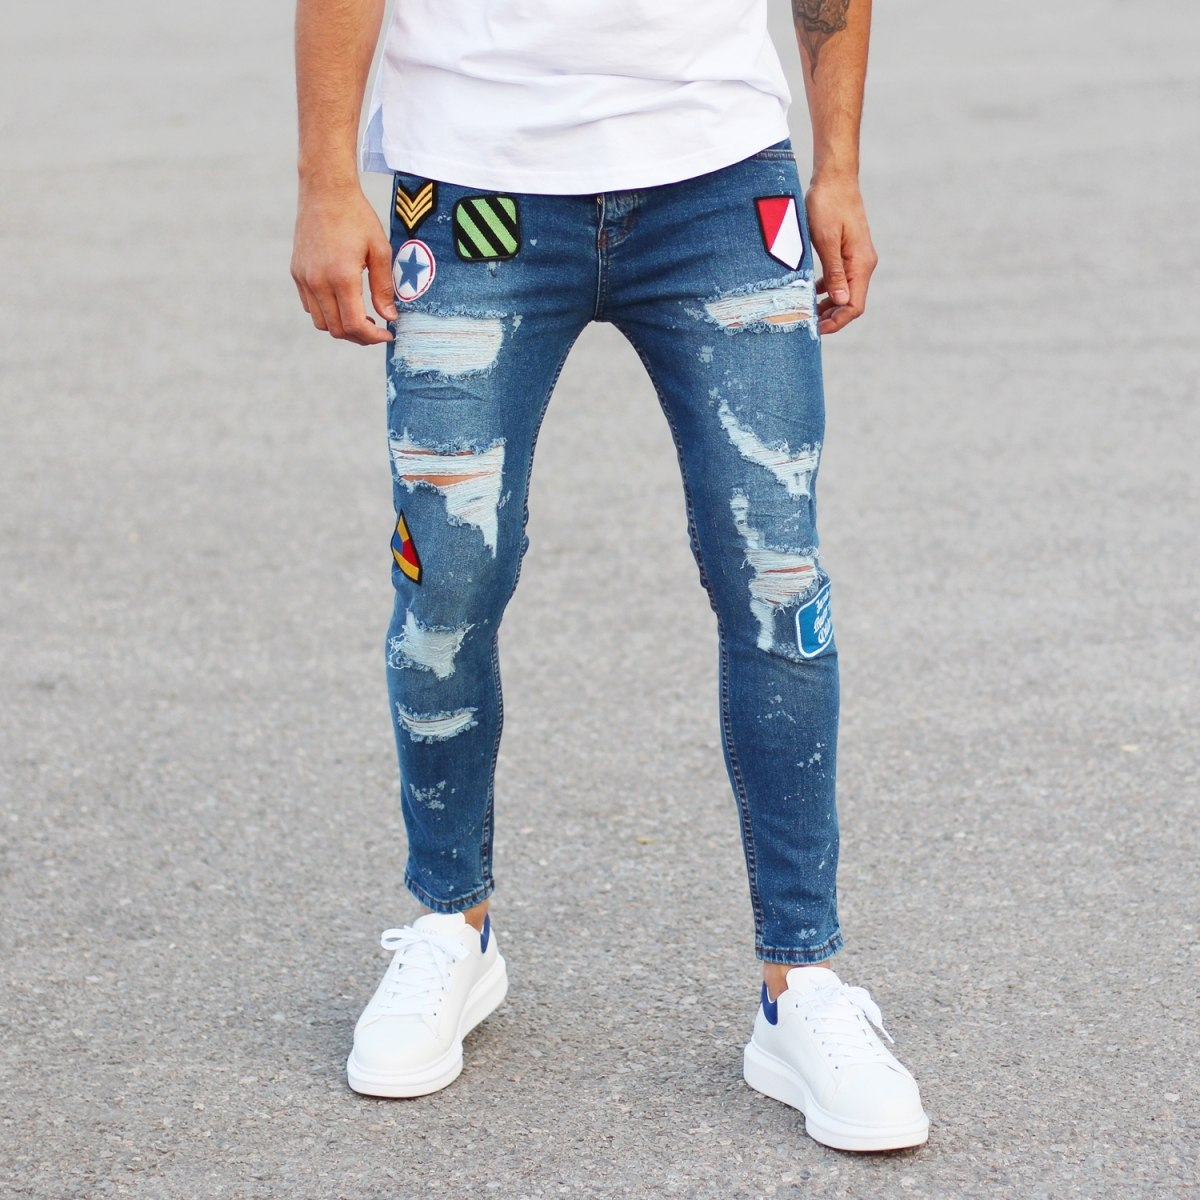 Men's Patchwork Jeans With Heavy Rips Blue